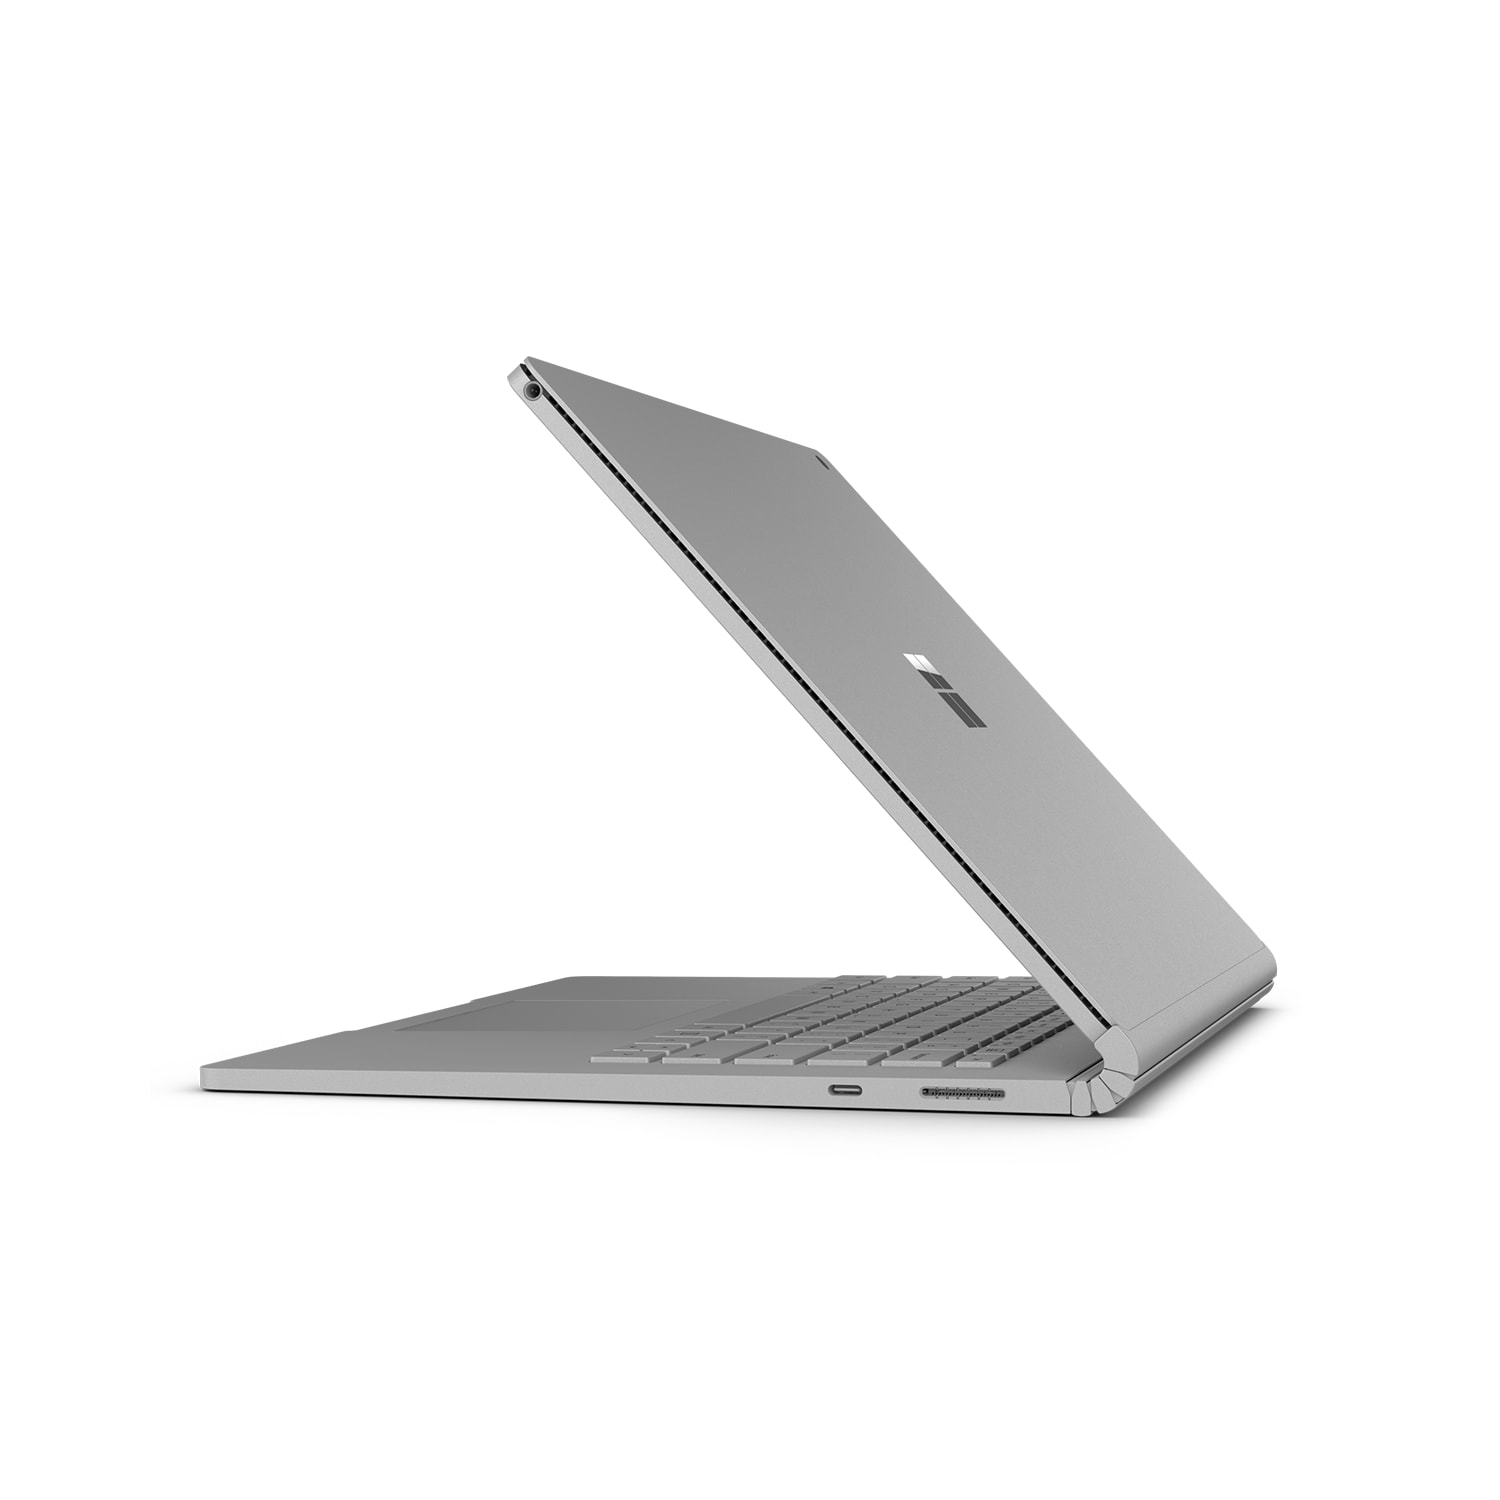 Laptop 2w1 MICROSOFT Surface Book 2 13.5 i5-7300U/8GB/SSD256GB/INT/Win 10 Pro